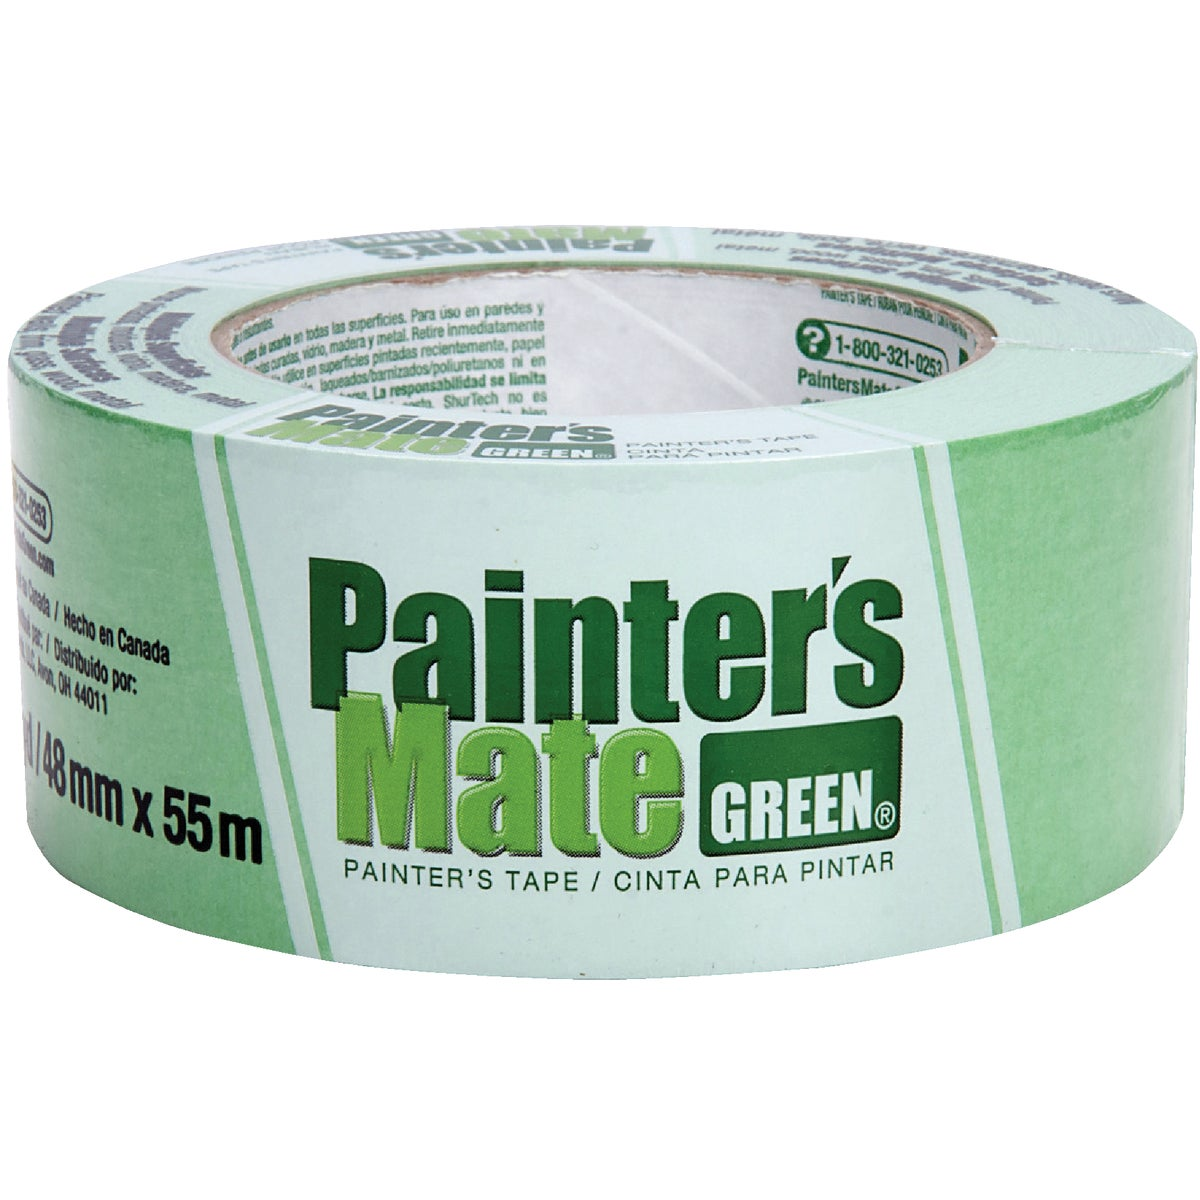 "1.88"" PAINTERS MATE TAPE - 667016 by Shurtech"